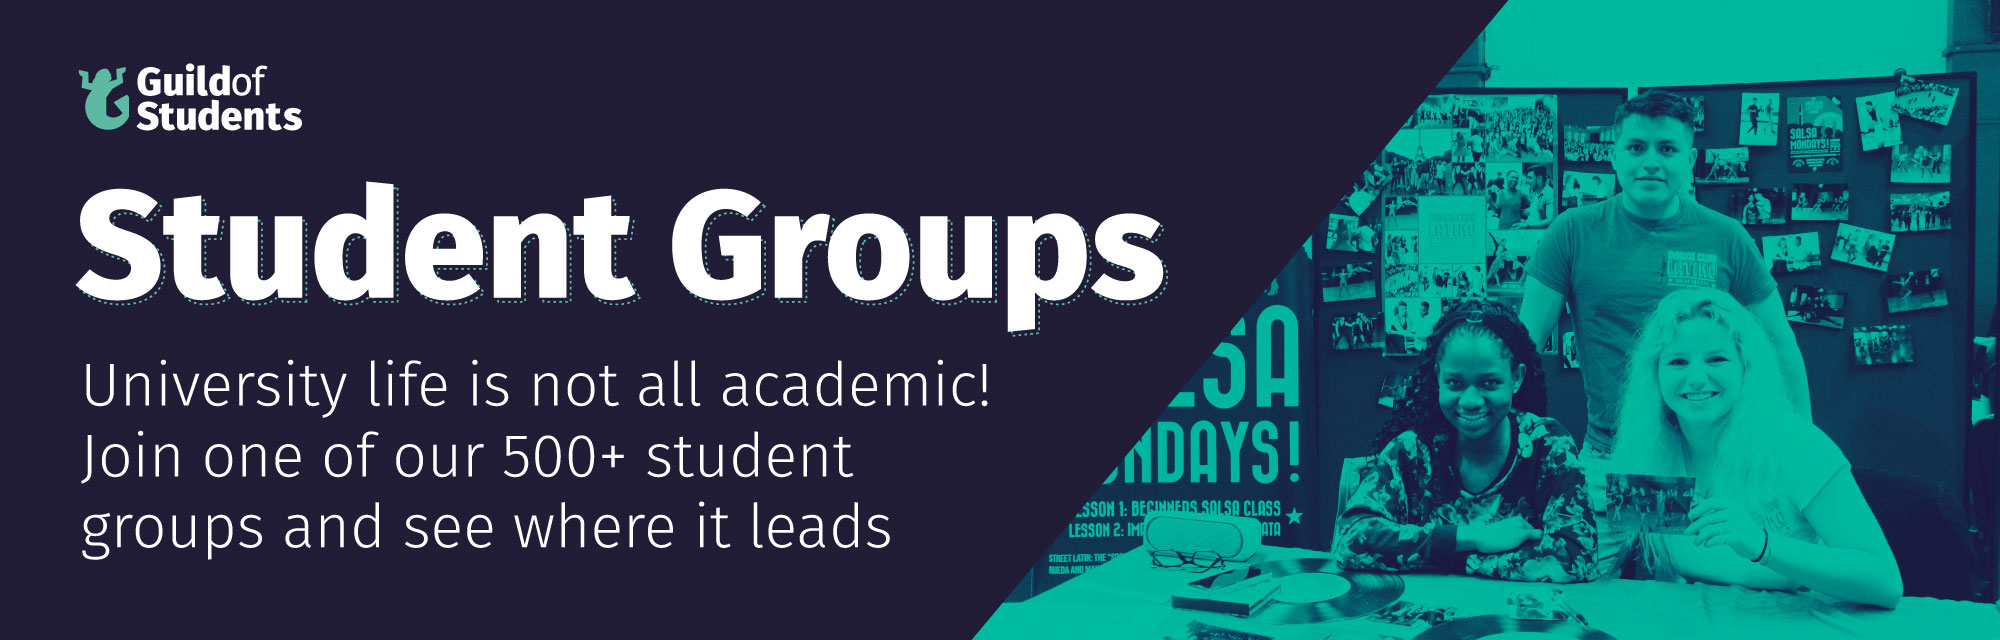 Guild of Students Student Groups